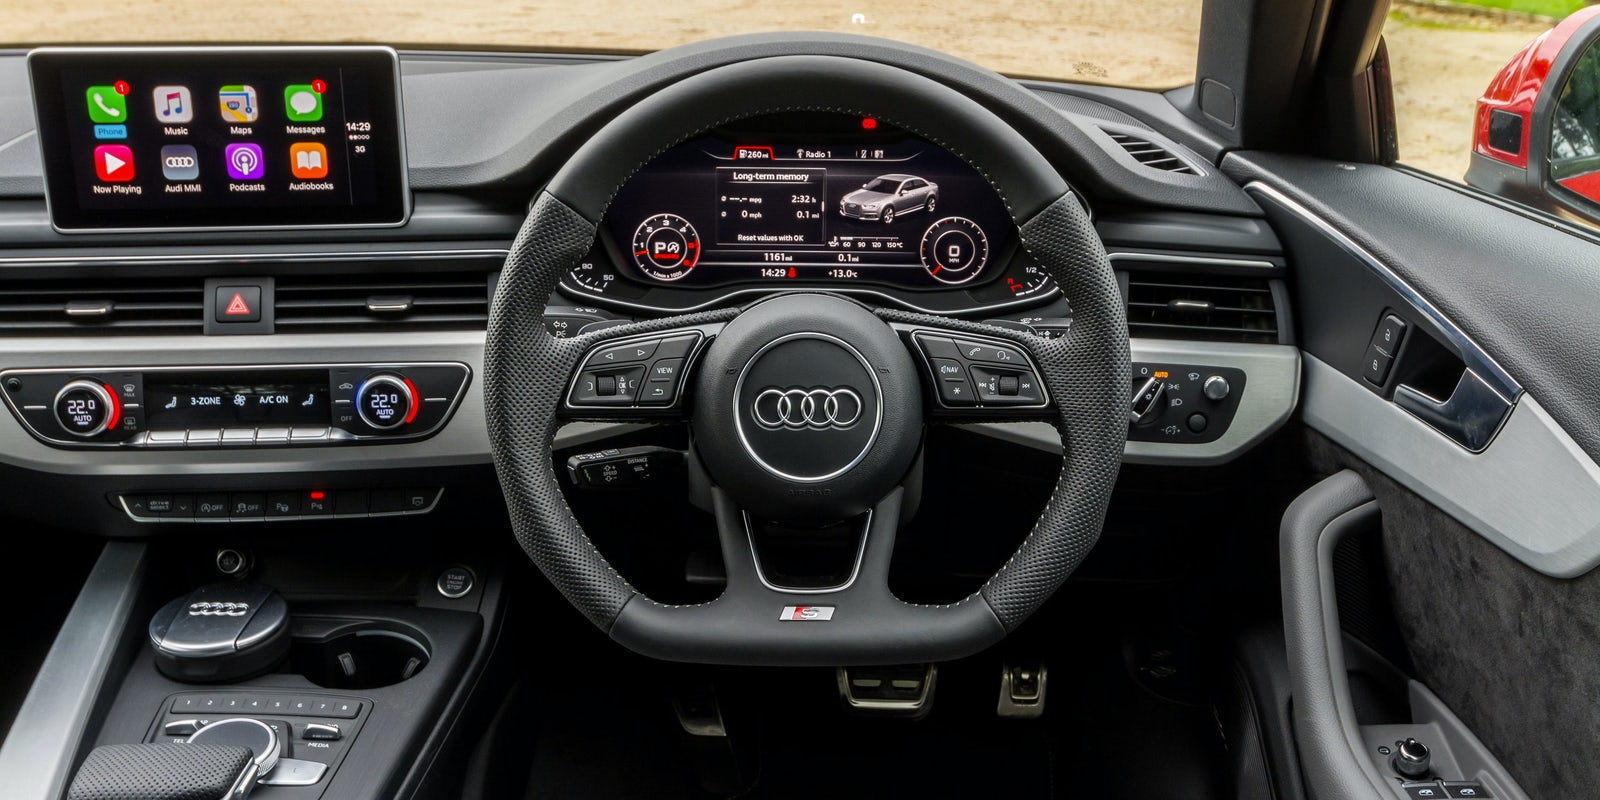 Audi A4 interior and infotainment | carwow